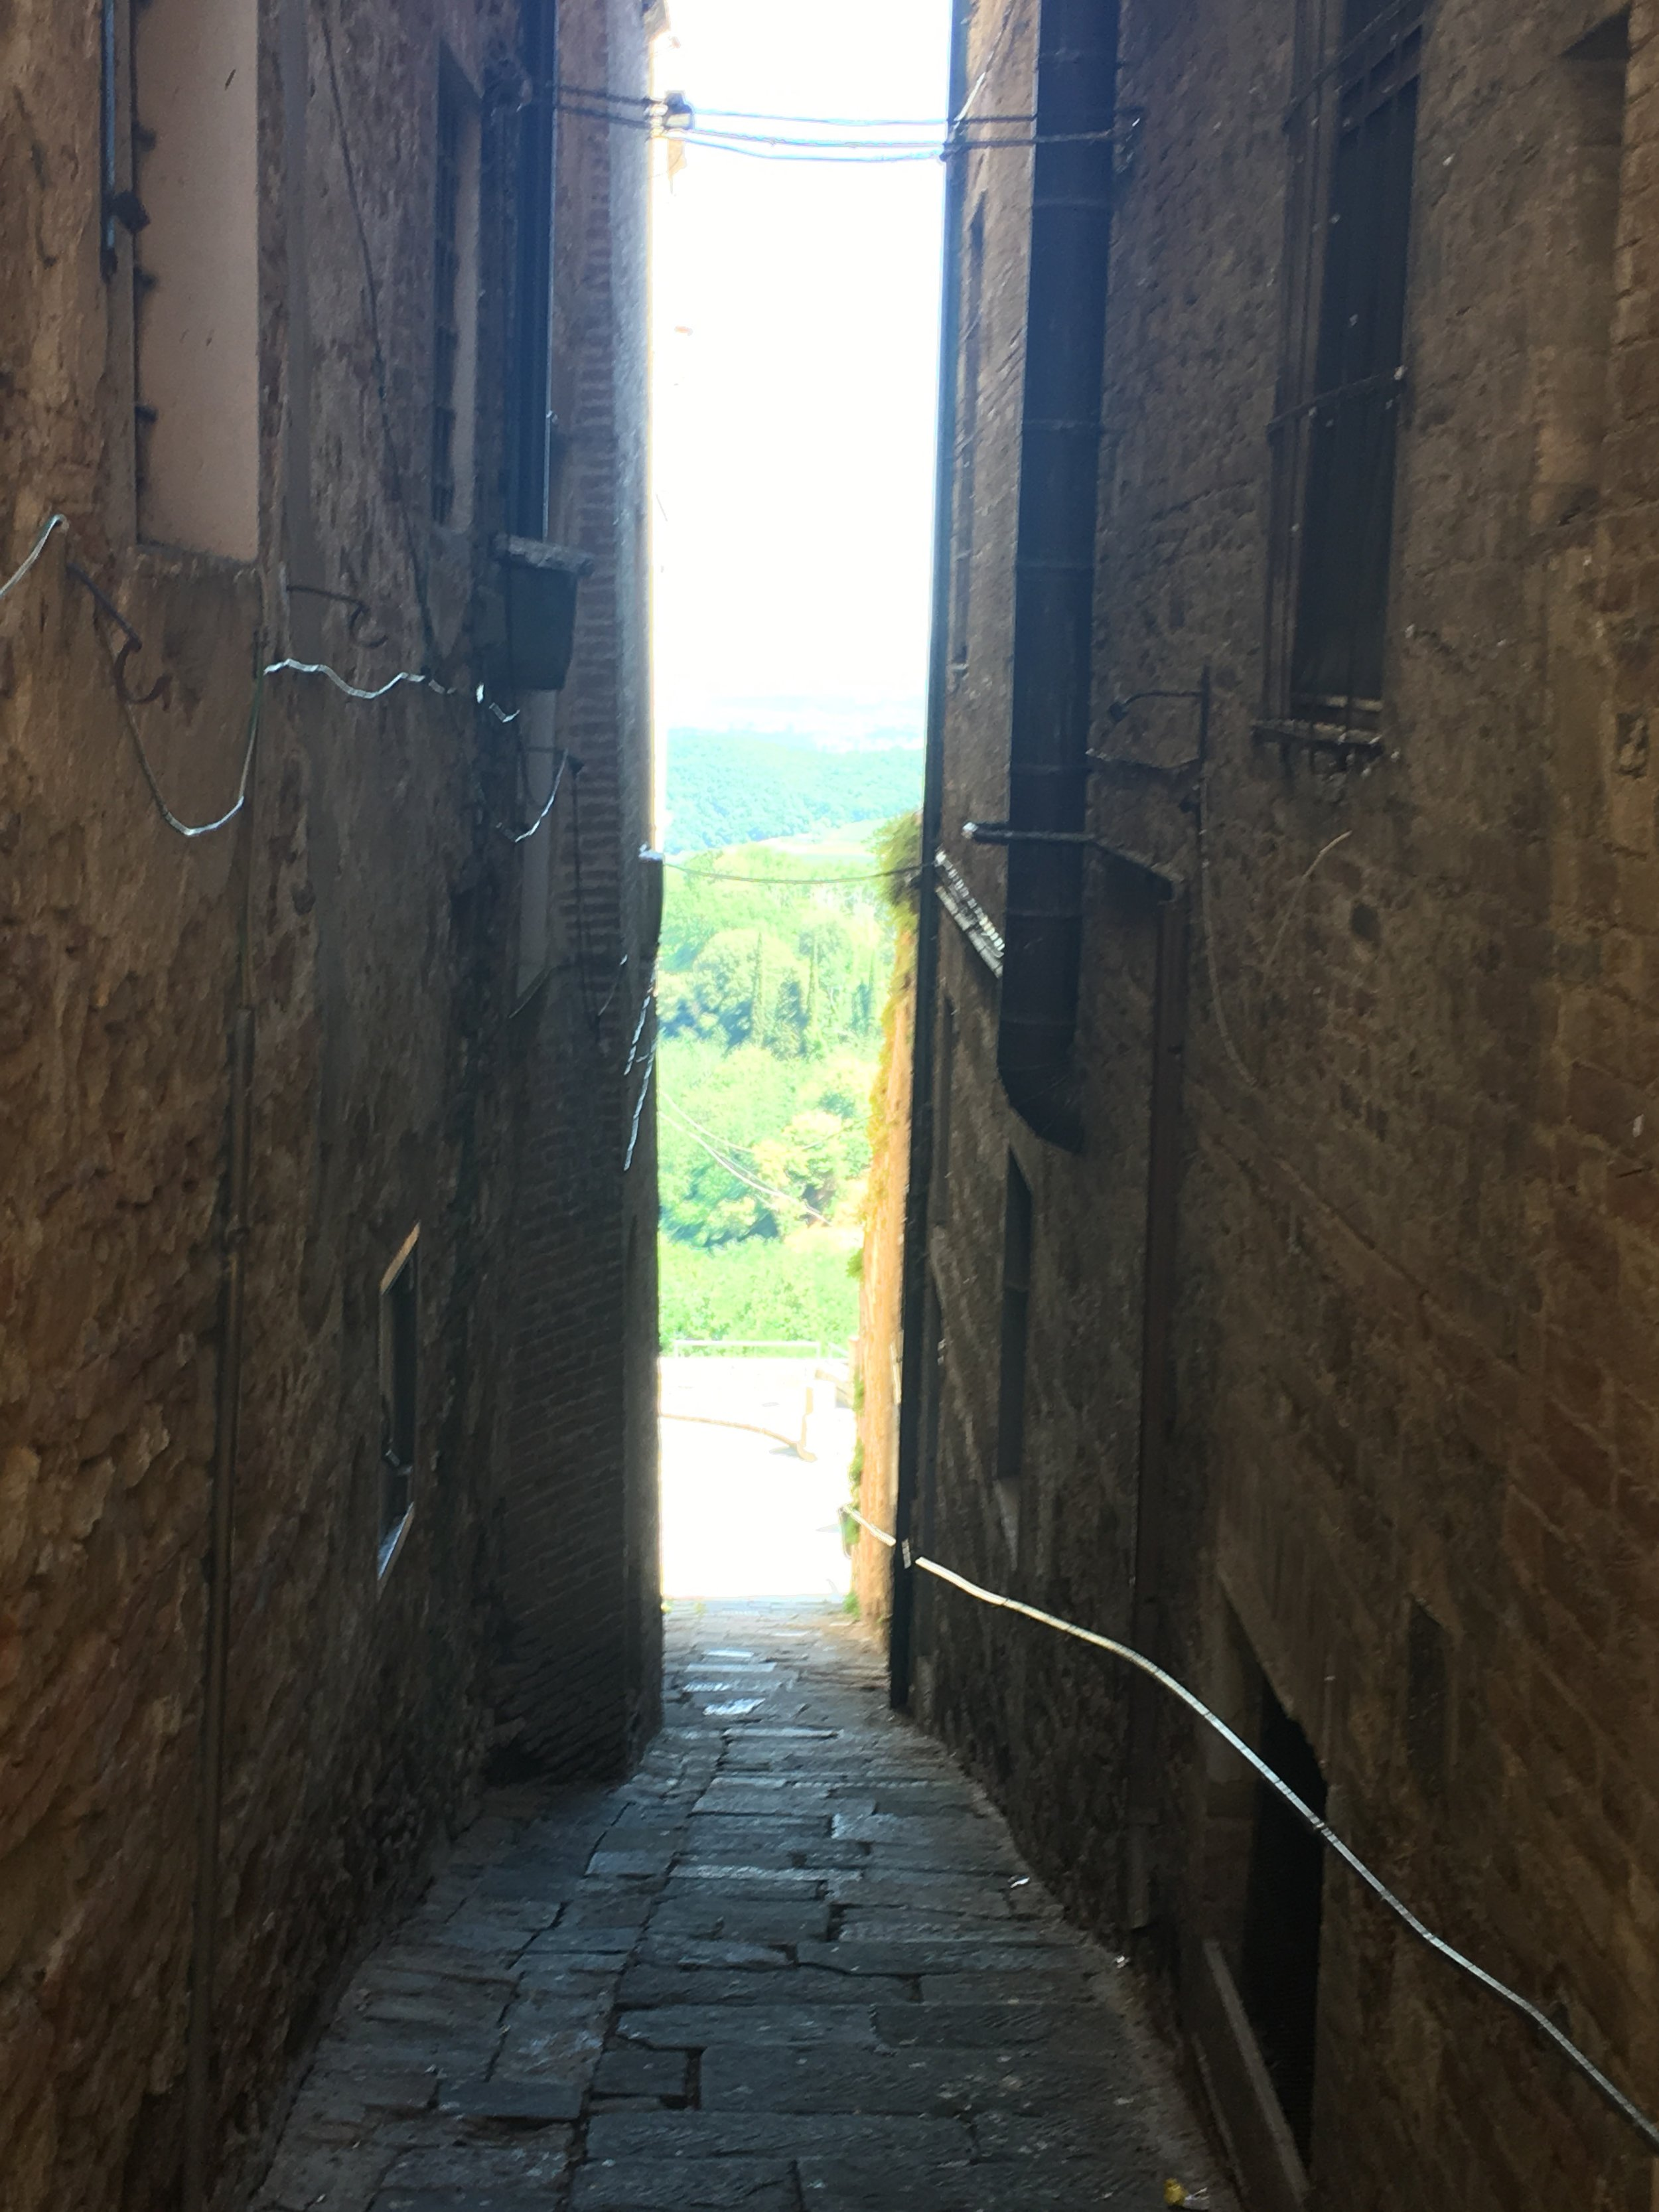 A narrow way, somewhere in the Tuscany region of Italy